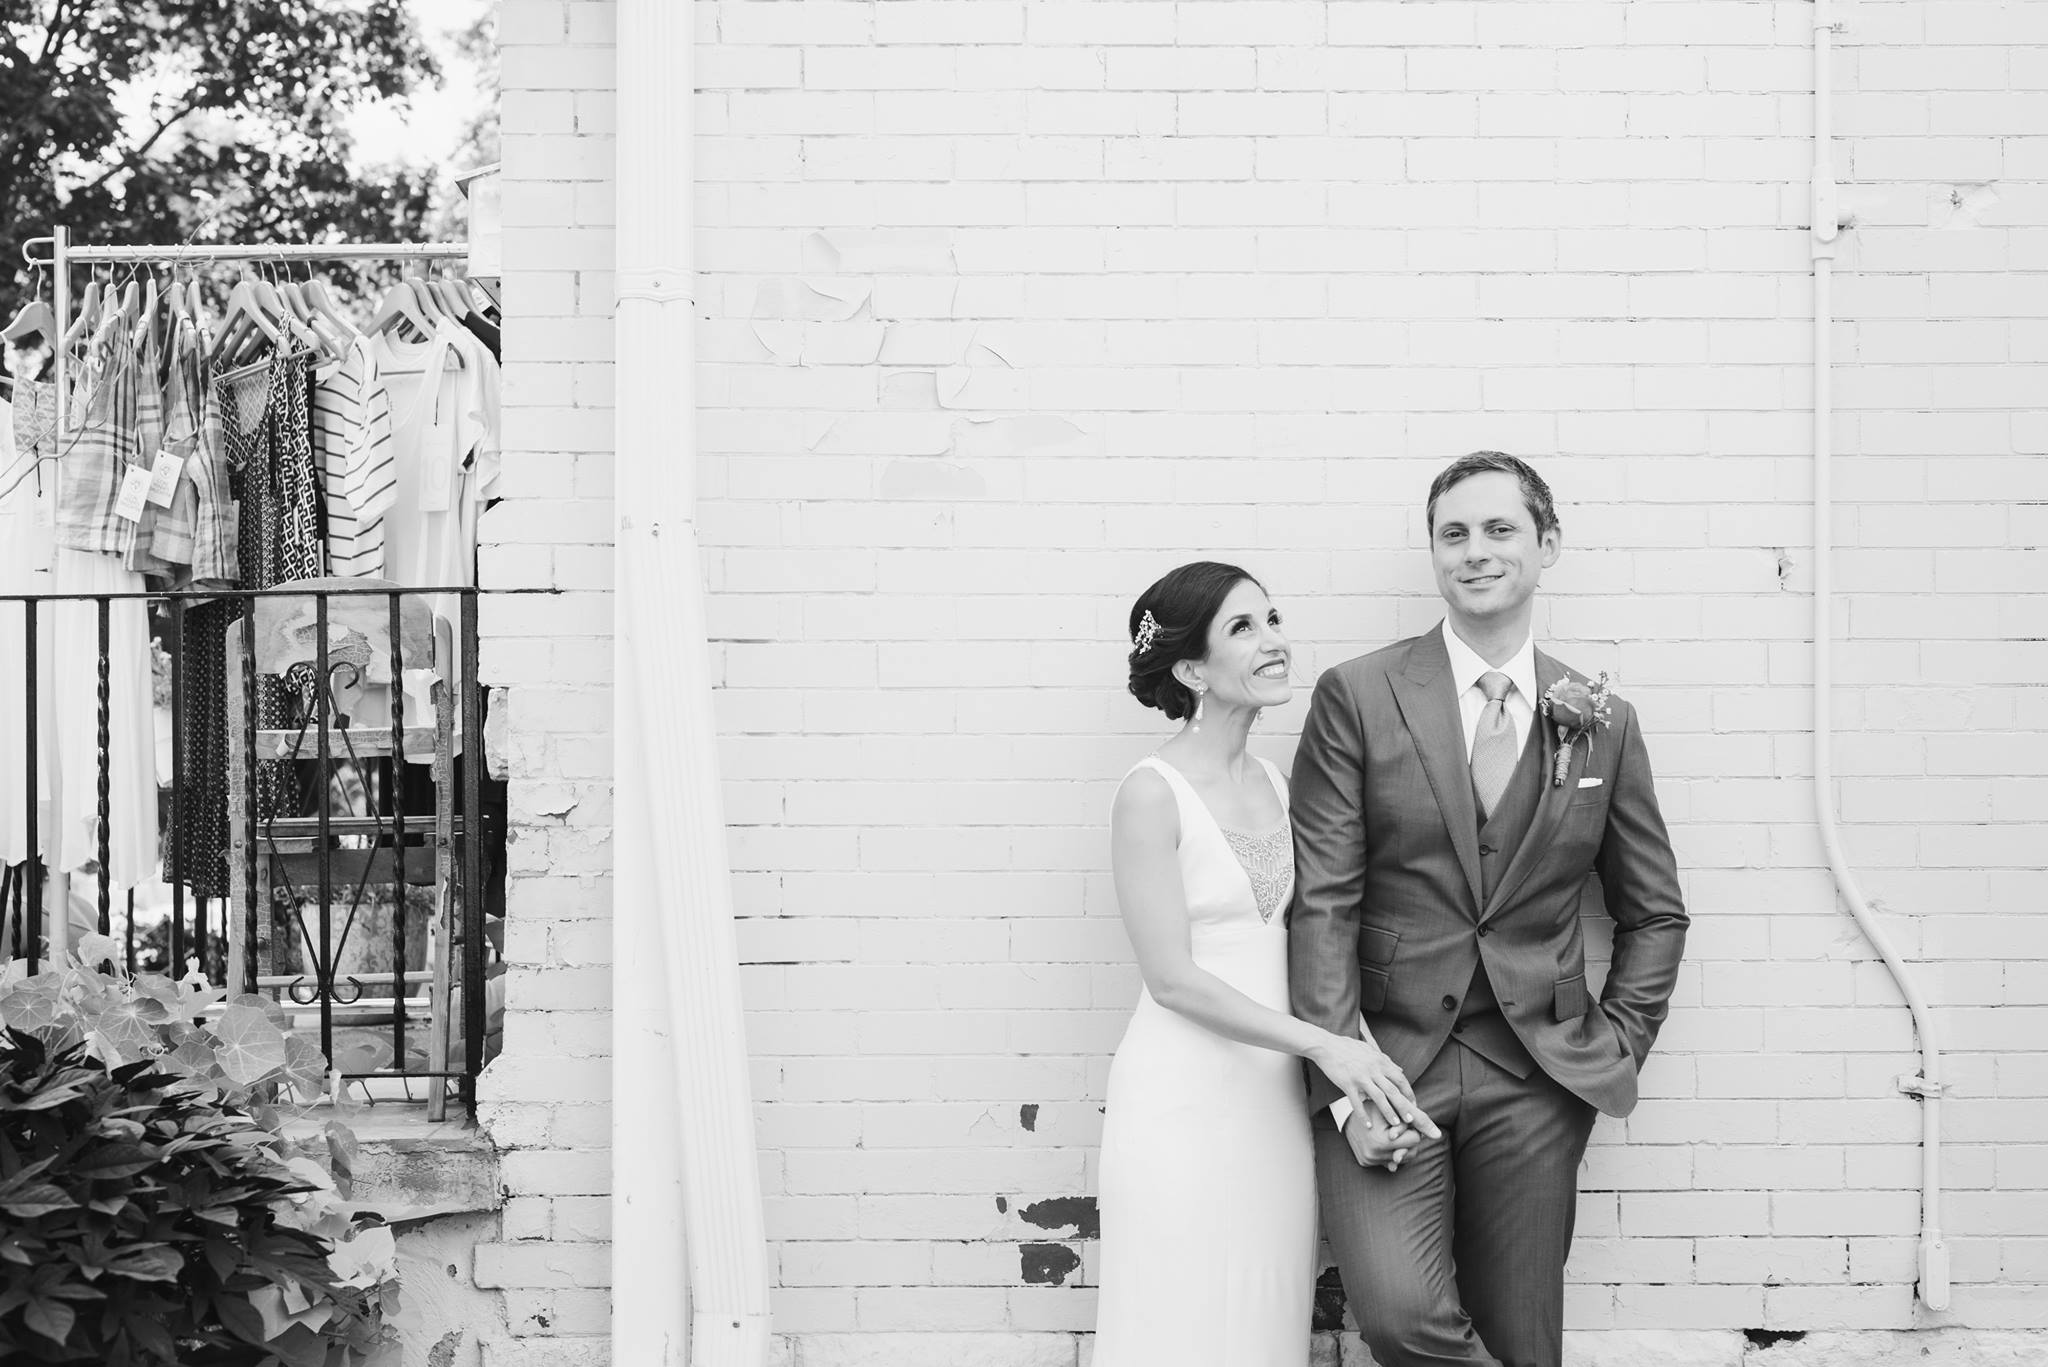 Sanam & Matt | July 23, 2016 | Malaparte - I can't thank Aussie and An Elegant Soiree enough for all your work and help in making our special day simply MAGICAL! We were a tough couple to work with but Aussie was on top of everything. She was following up with us and our vendors ( the month of) to make sure everything was going to go as planned and on the day of, she was just amazing at getting everything set up for us and for making sure everything ran smoothly and to our expectations. We can't recommend her services enough. You took the guesswork and hard-work and gave us a day to remember! Thank you!